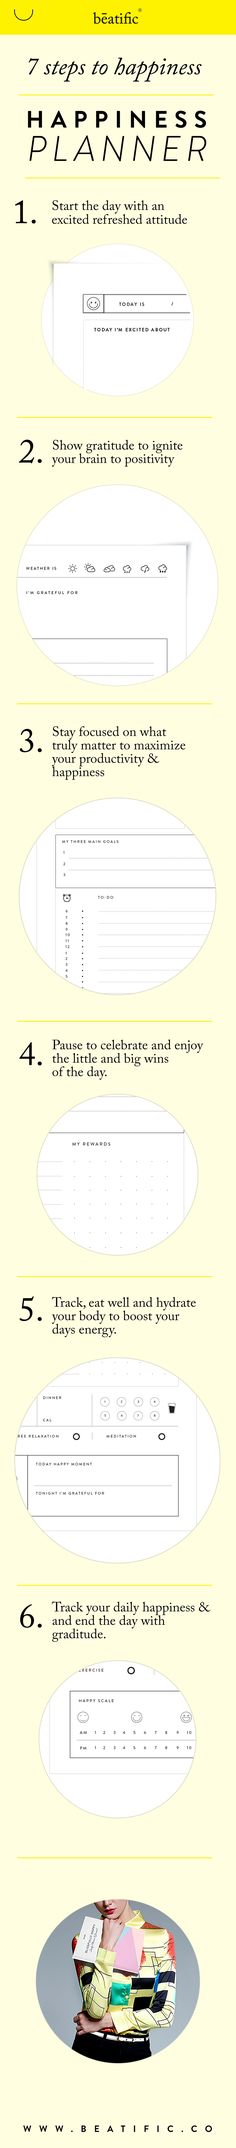 I skeptically tried practicing gratitude. It completely changed my life. - Beatific.co | Planners & Journals